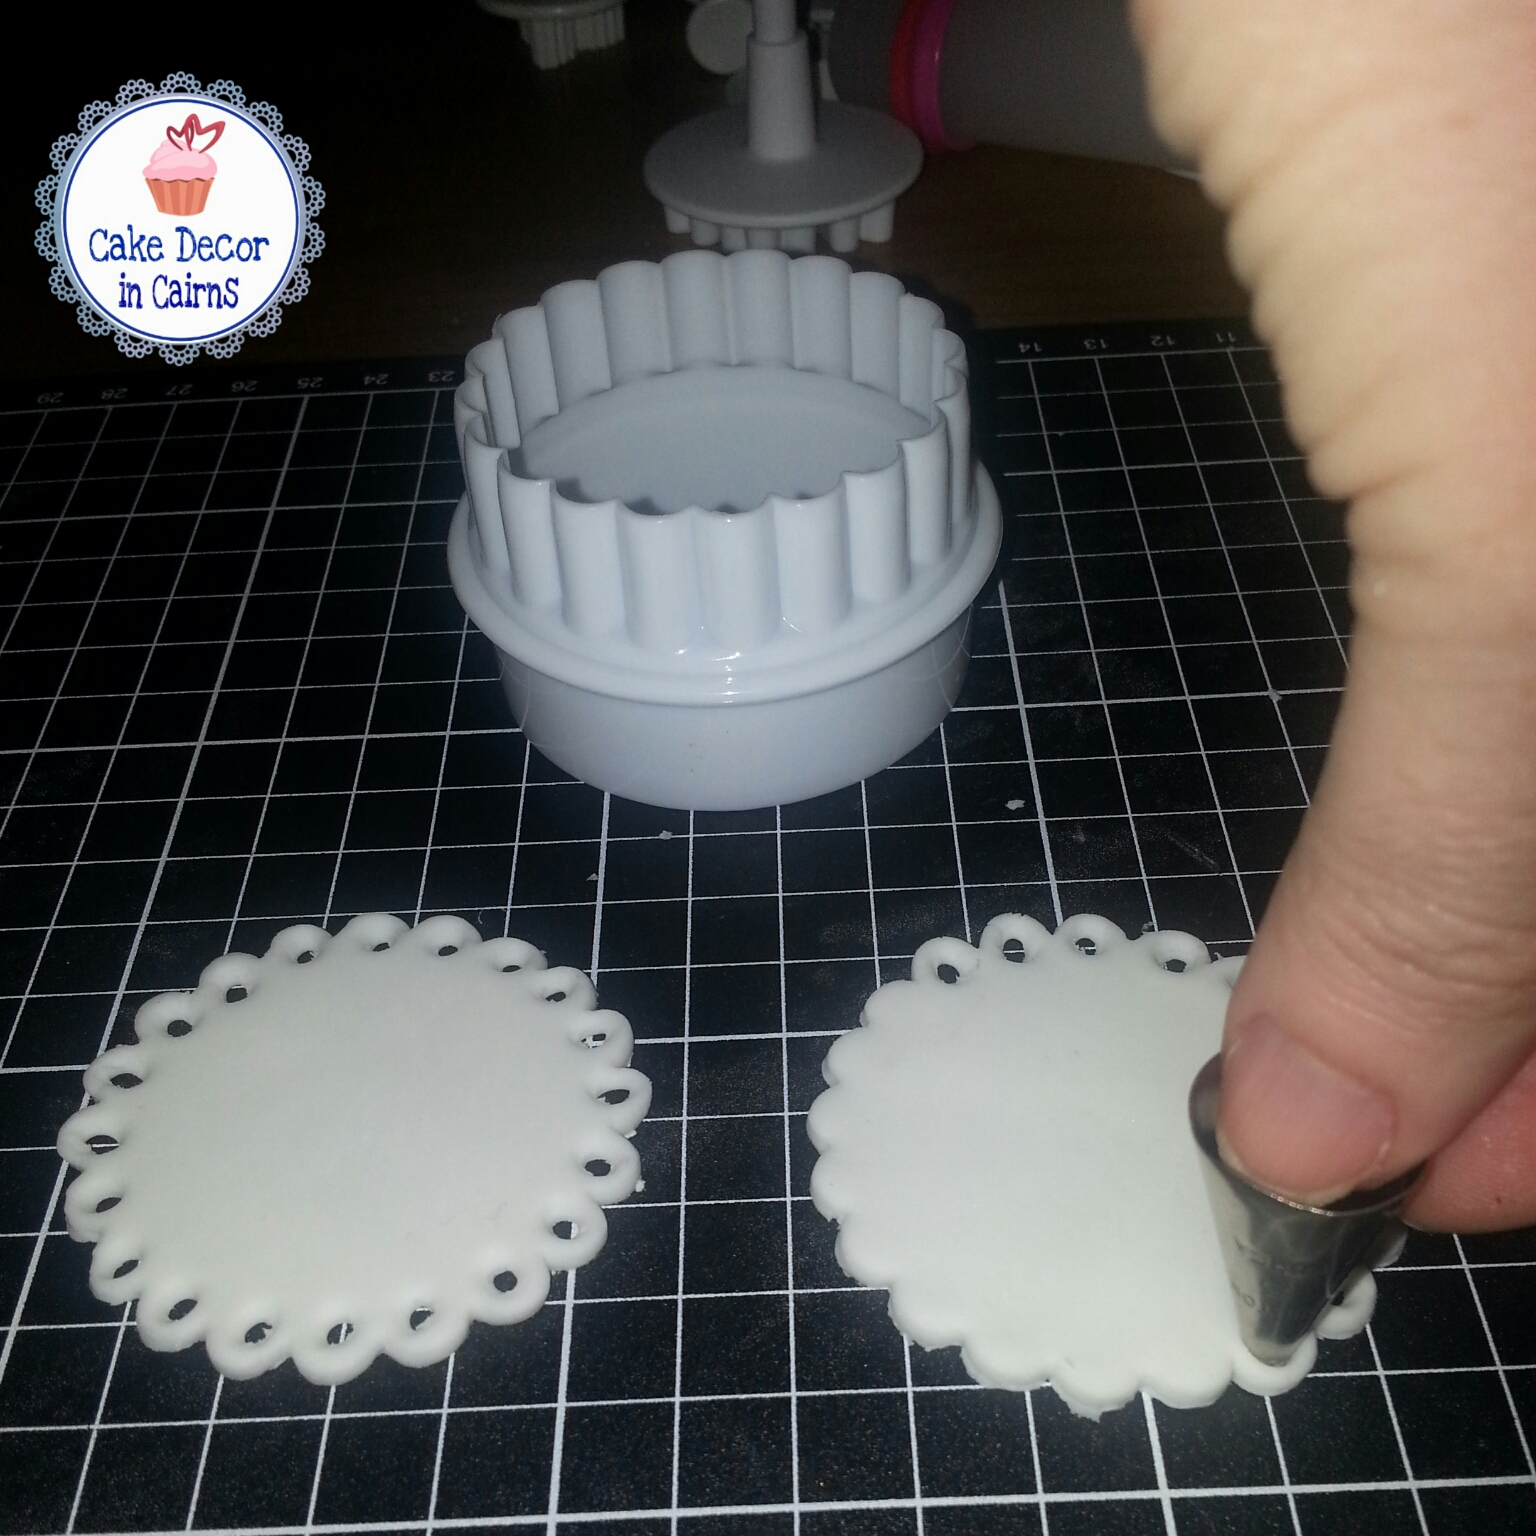 Making punched out scalloped edges with fondant to make doily toppers.